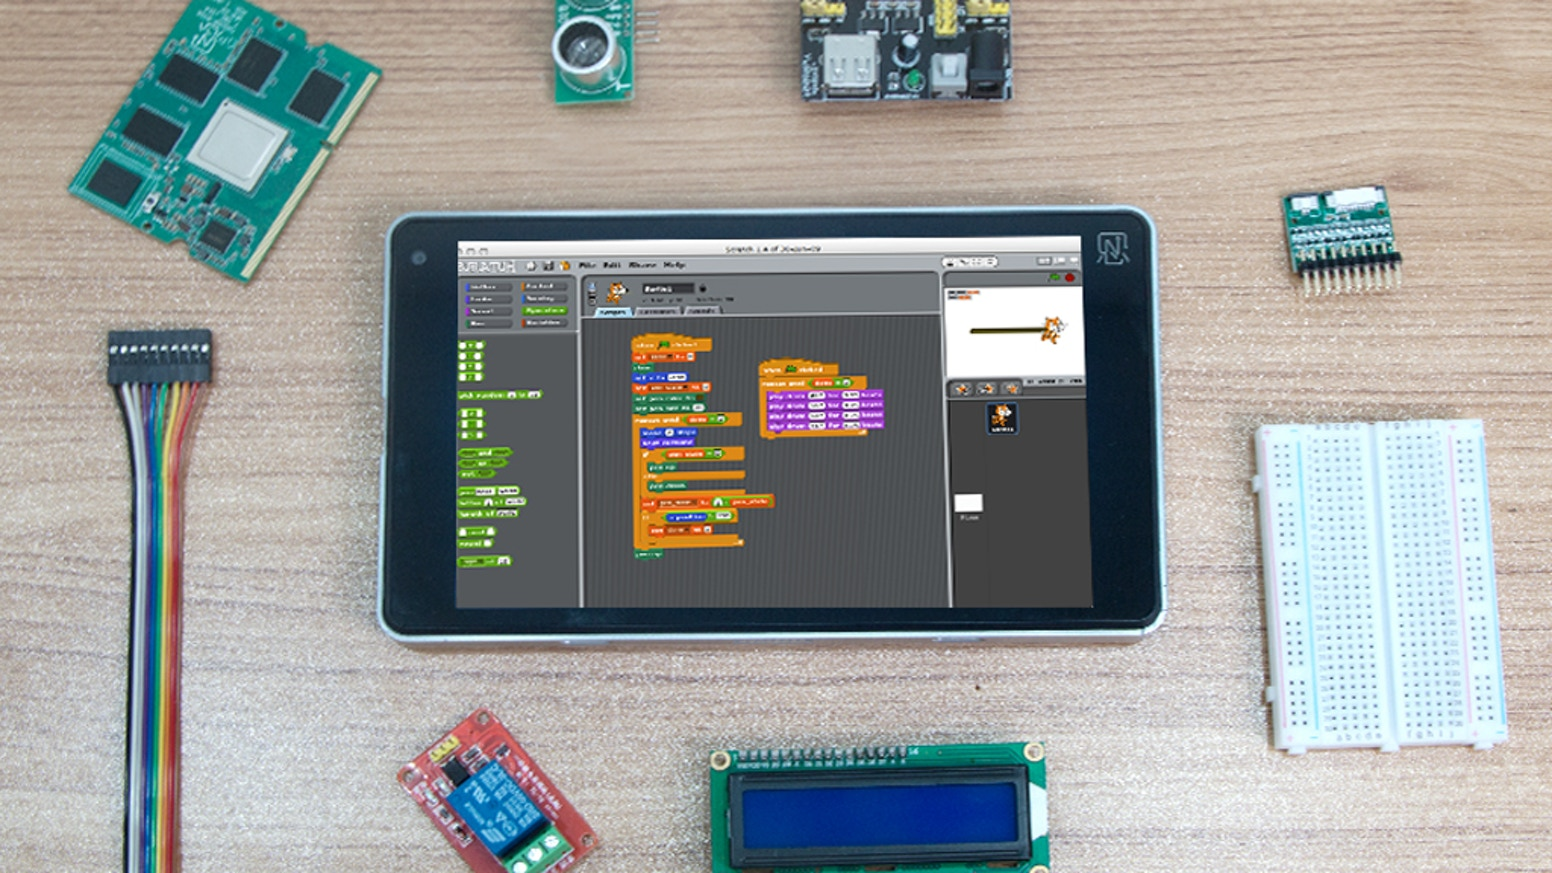 Ntablet: A tablet that comes with an interchangeable processor and that should also appeal to Raspberry Pi hobbyists